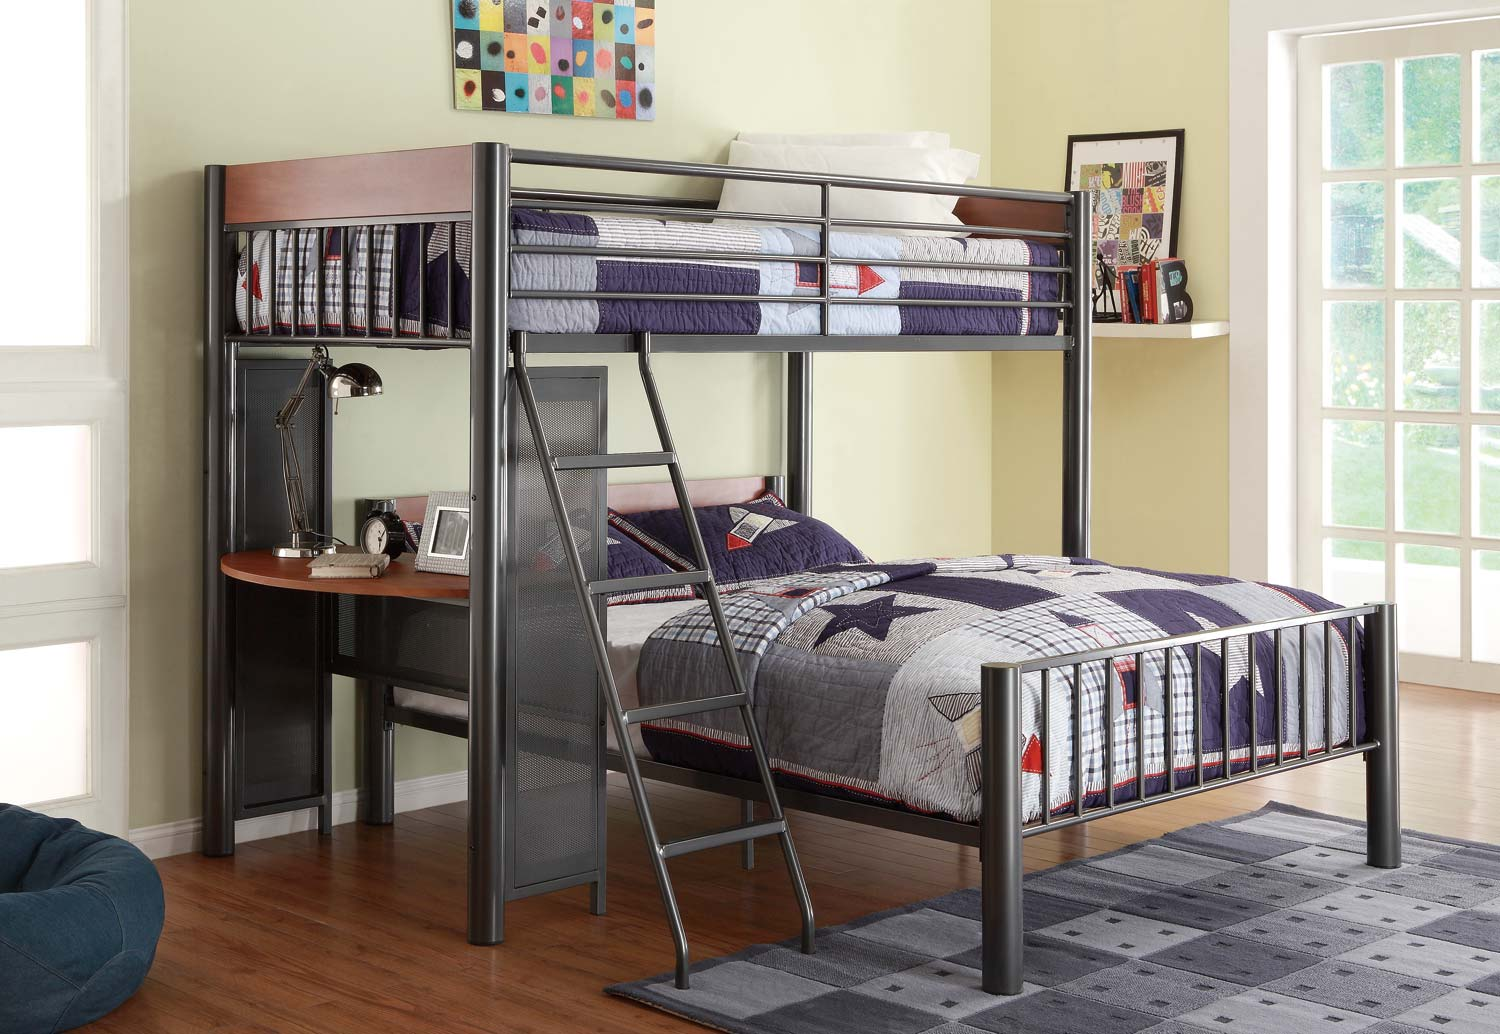 Homelegance Division Twin Loft Bed and Shelf - Light Graphite